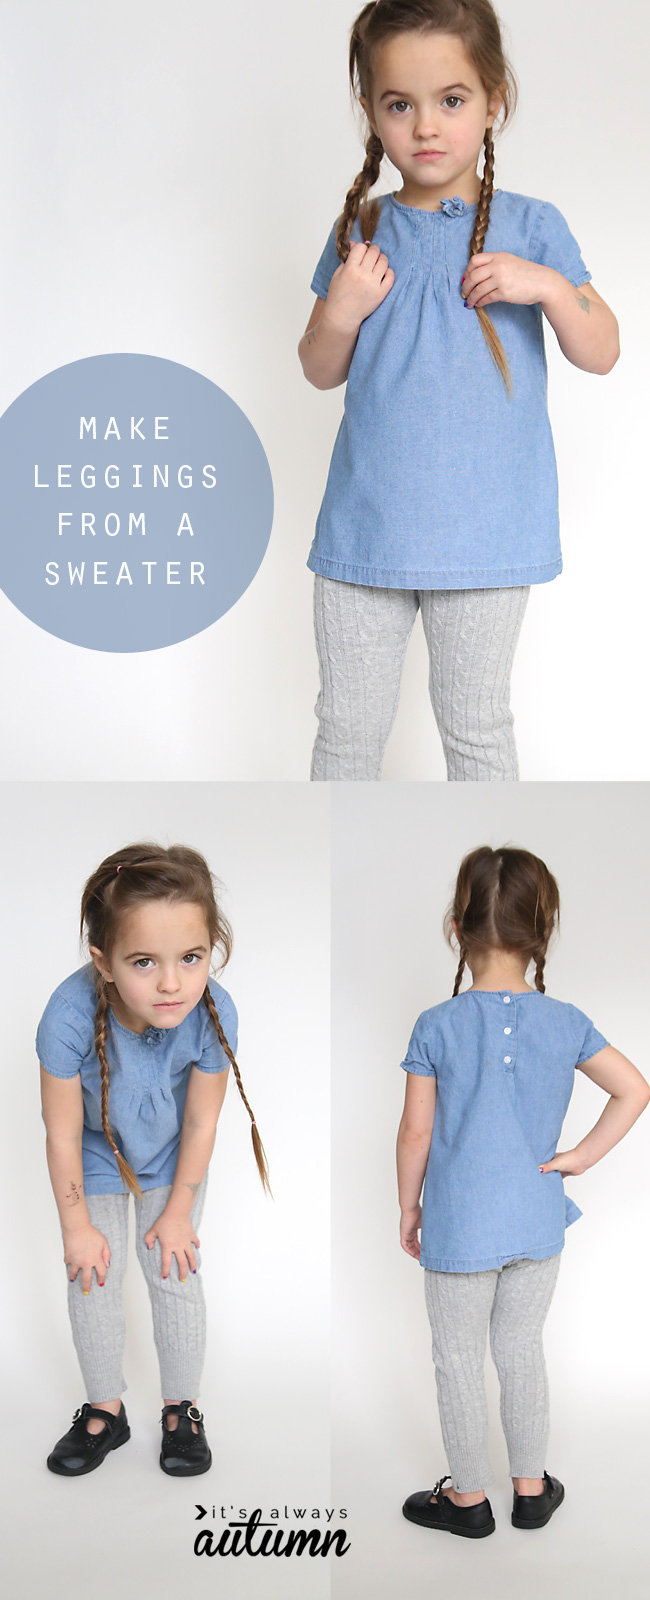 So cute! She cut up and old sweater and turned it into cozy leggings for her little girl! Easy sewing tutorial.